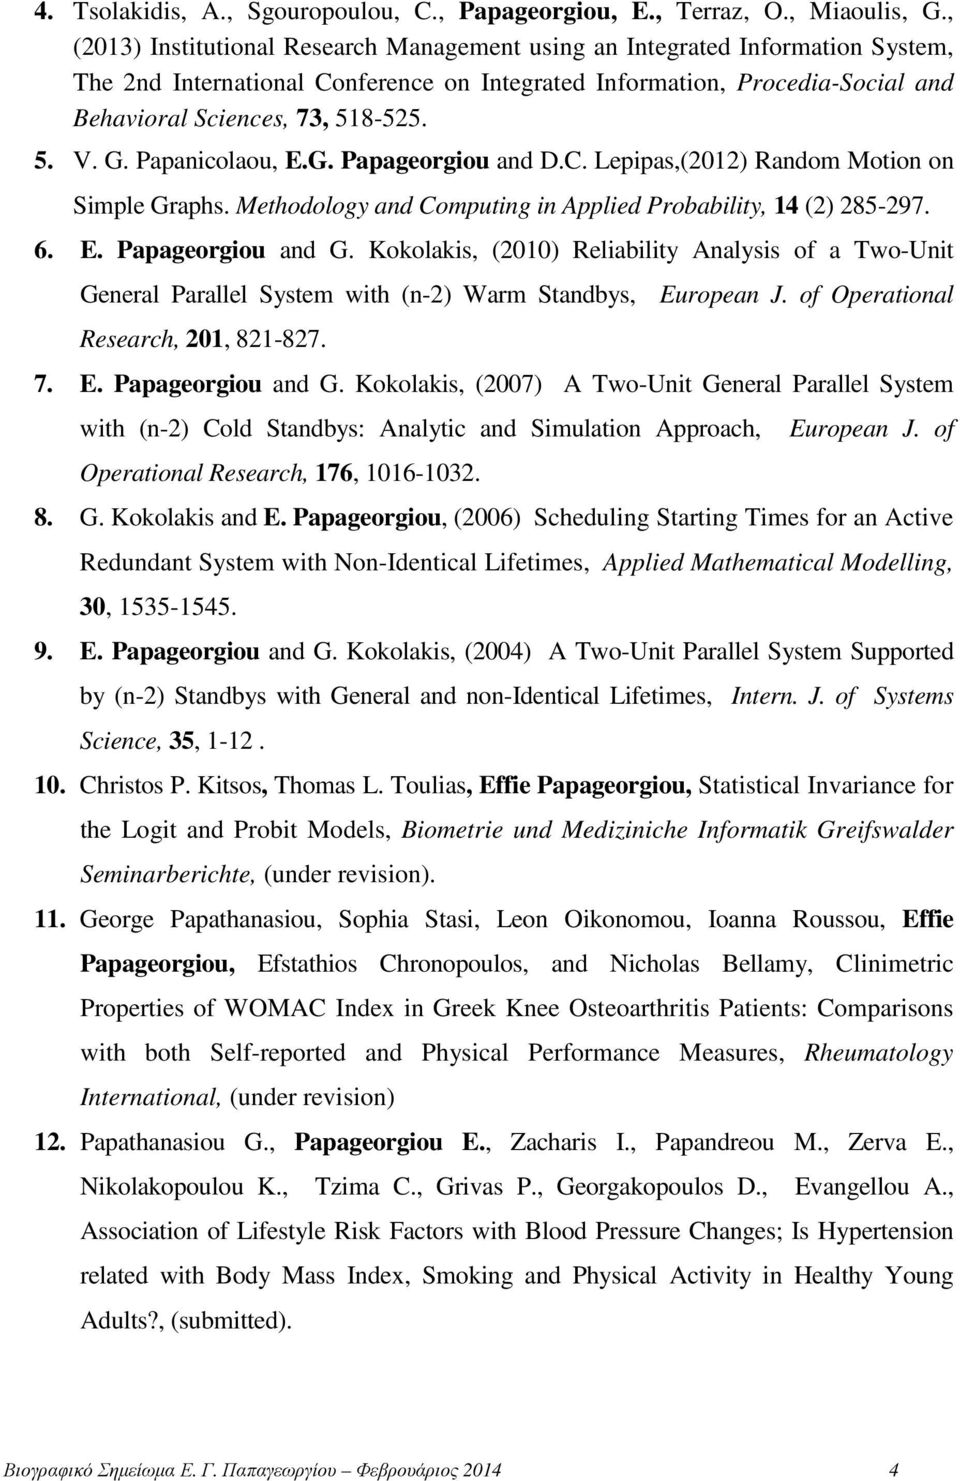 G. Papanicolaou, E.G. Papageorgiou and D.C. Lepipas,(2012) Random Motion on Simple Graphs. Methodology and Computing in Applied Probability, 14 (2) 285-297. 6. E. Papageorgiou and G.